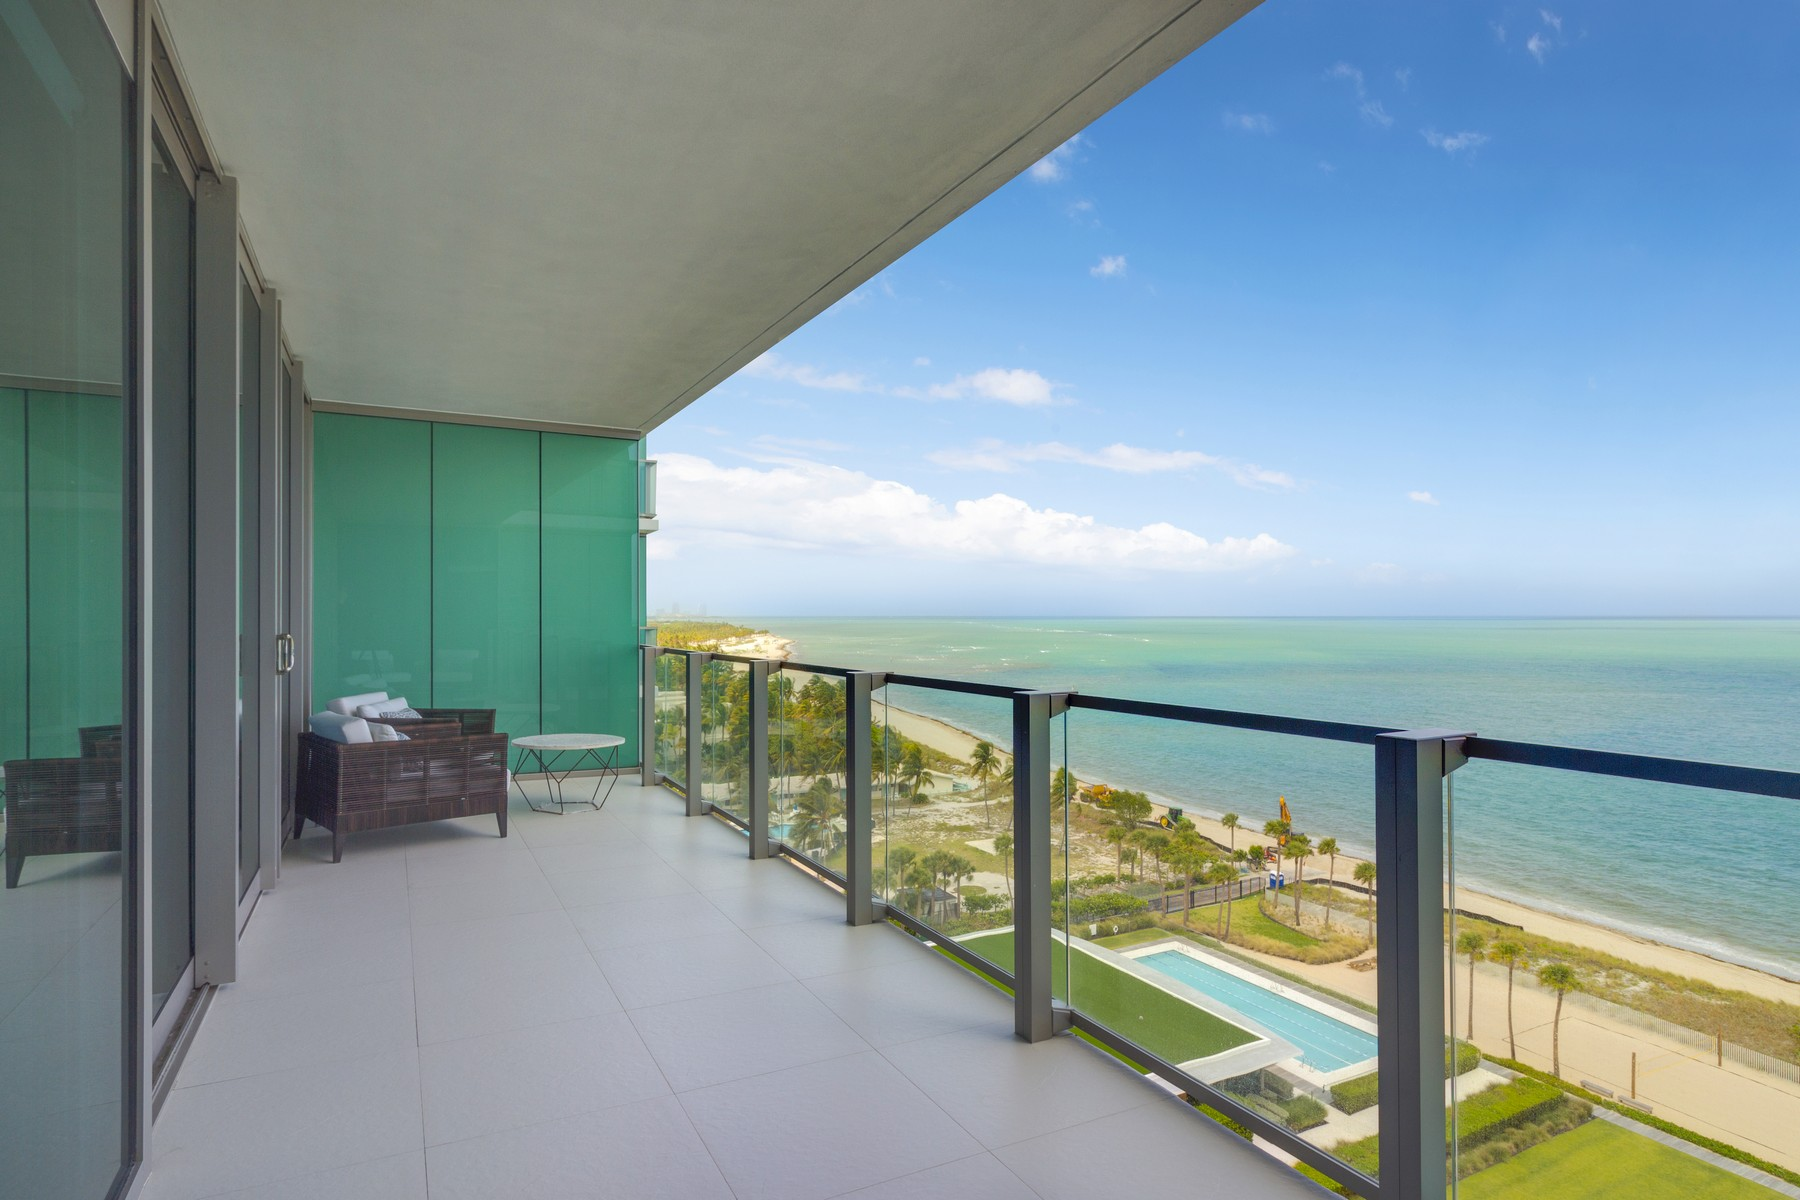 Condominiums for Sale at 360 Ocean Dr 1106S Key Biscayne, Florida 33149 United States